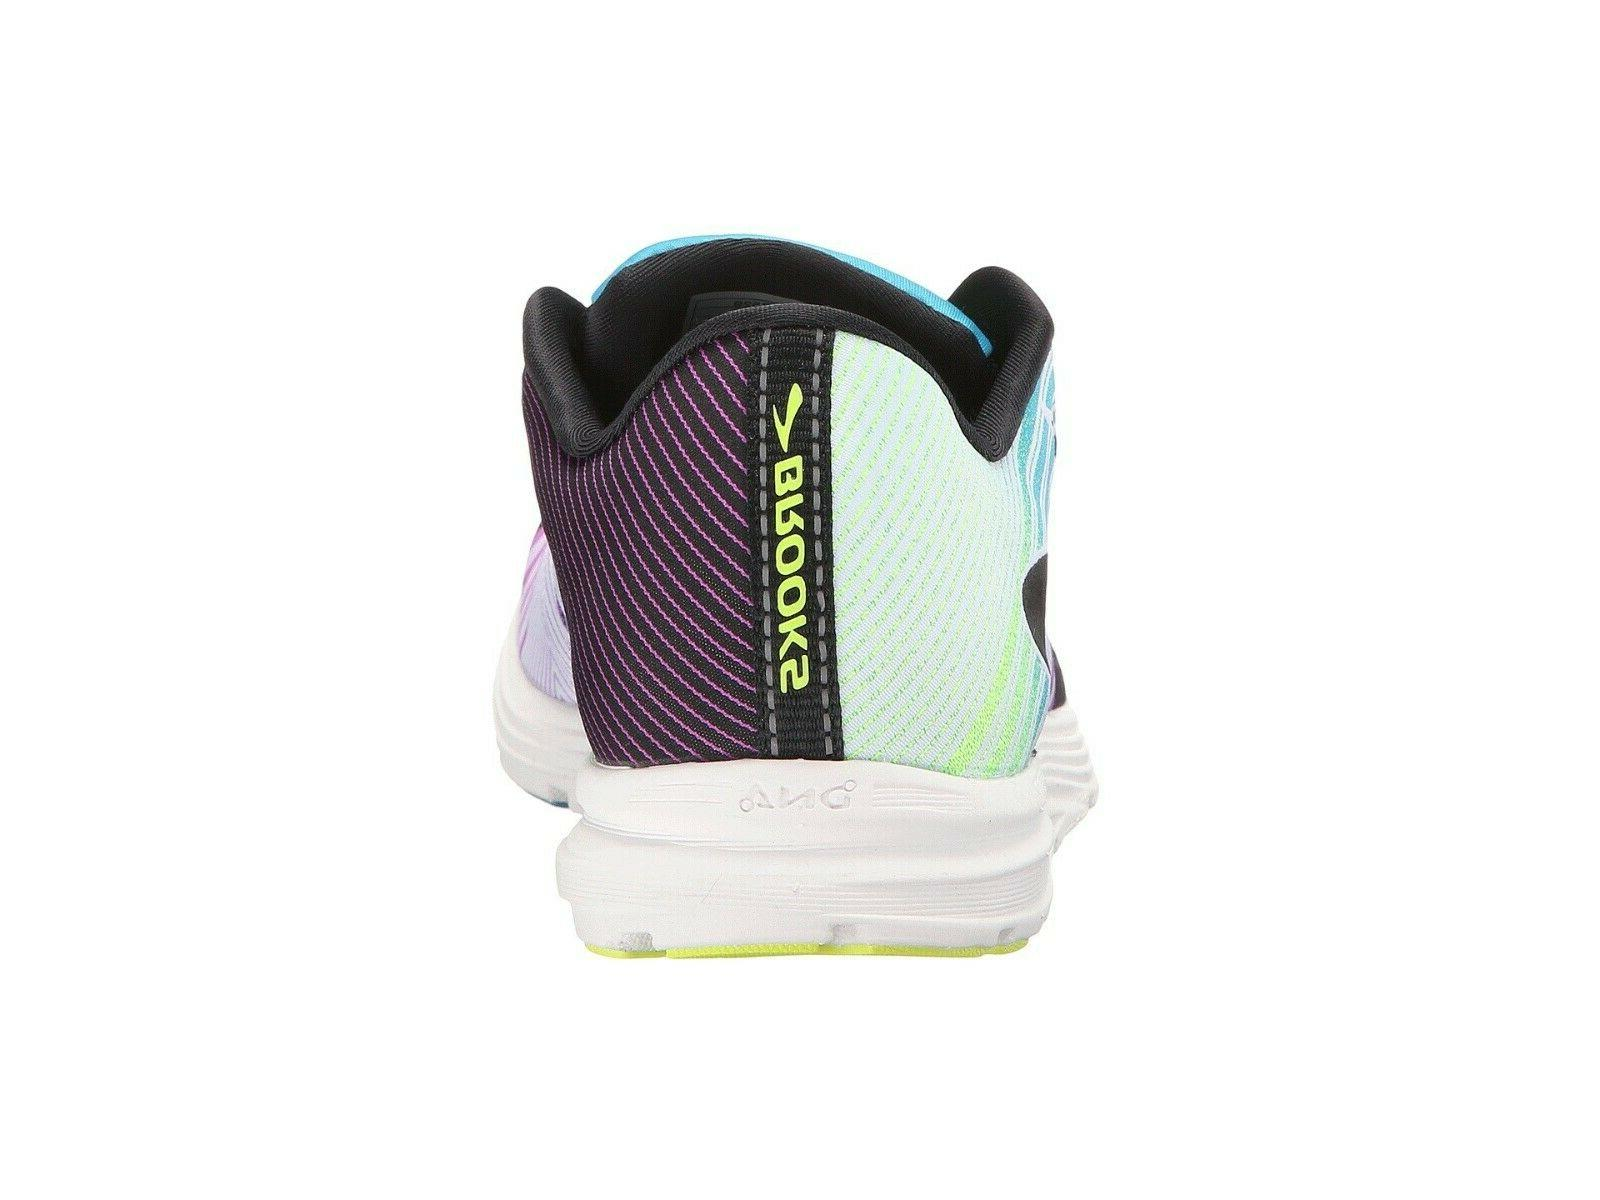 Brooks Sneaker Shoes